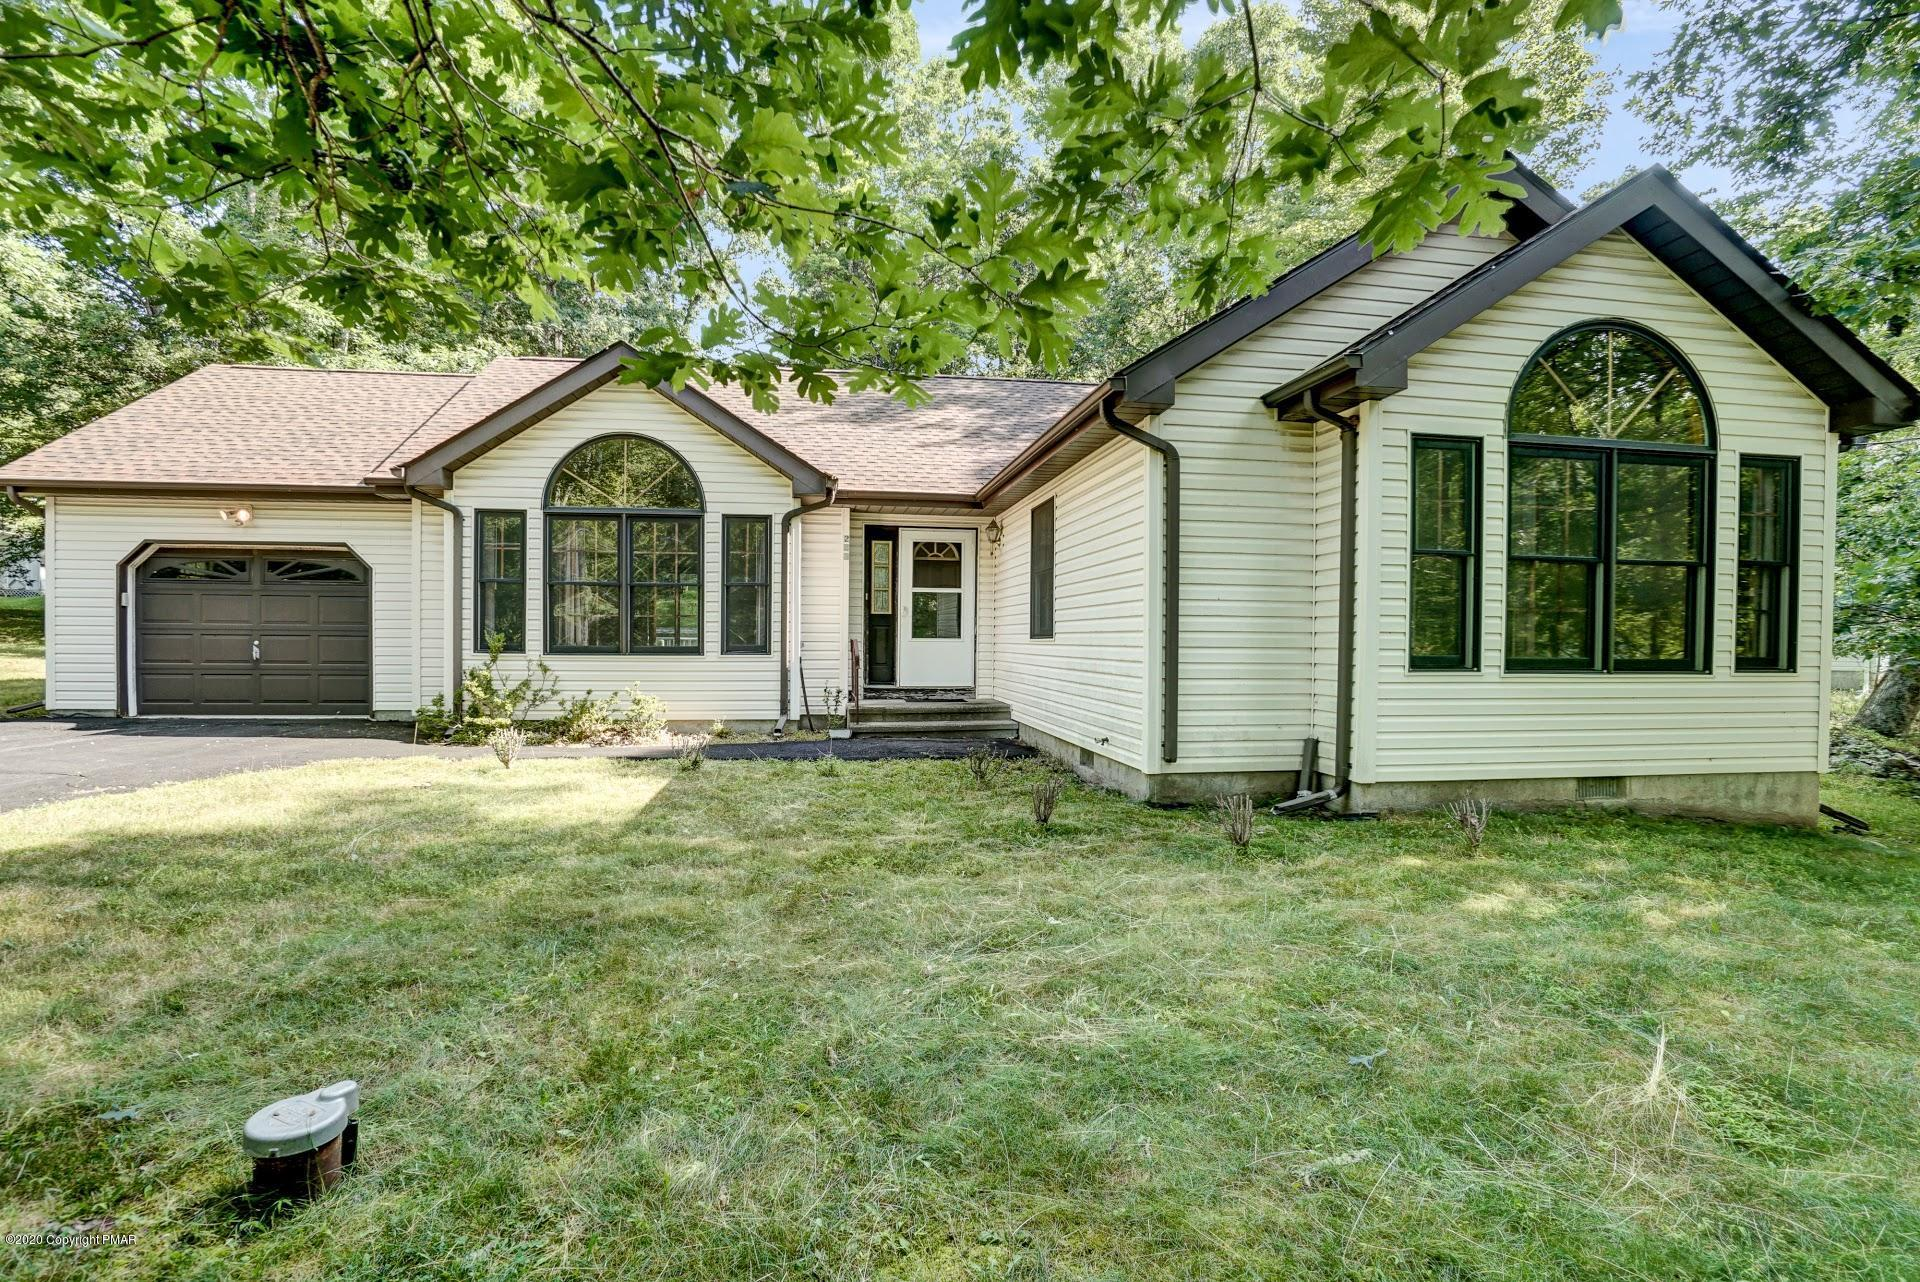 233 Bromley Rd, Henryville, PA 18332